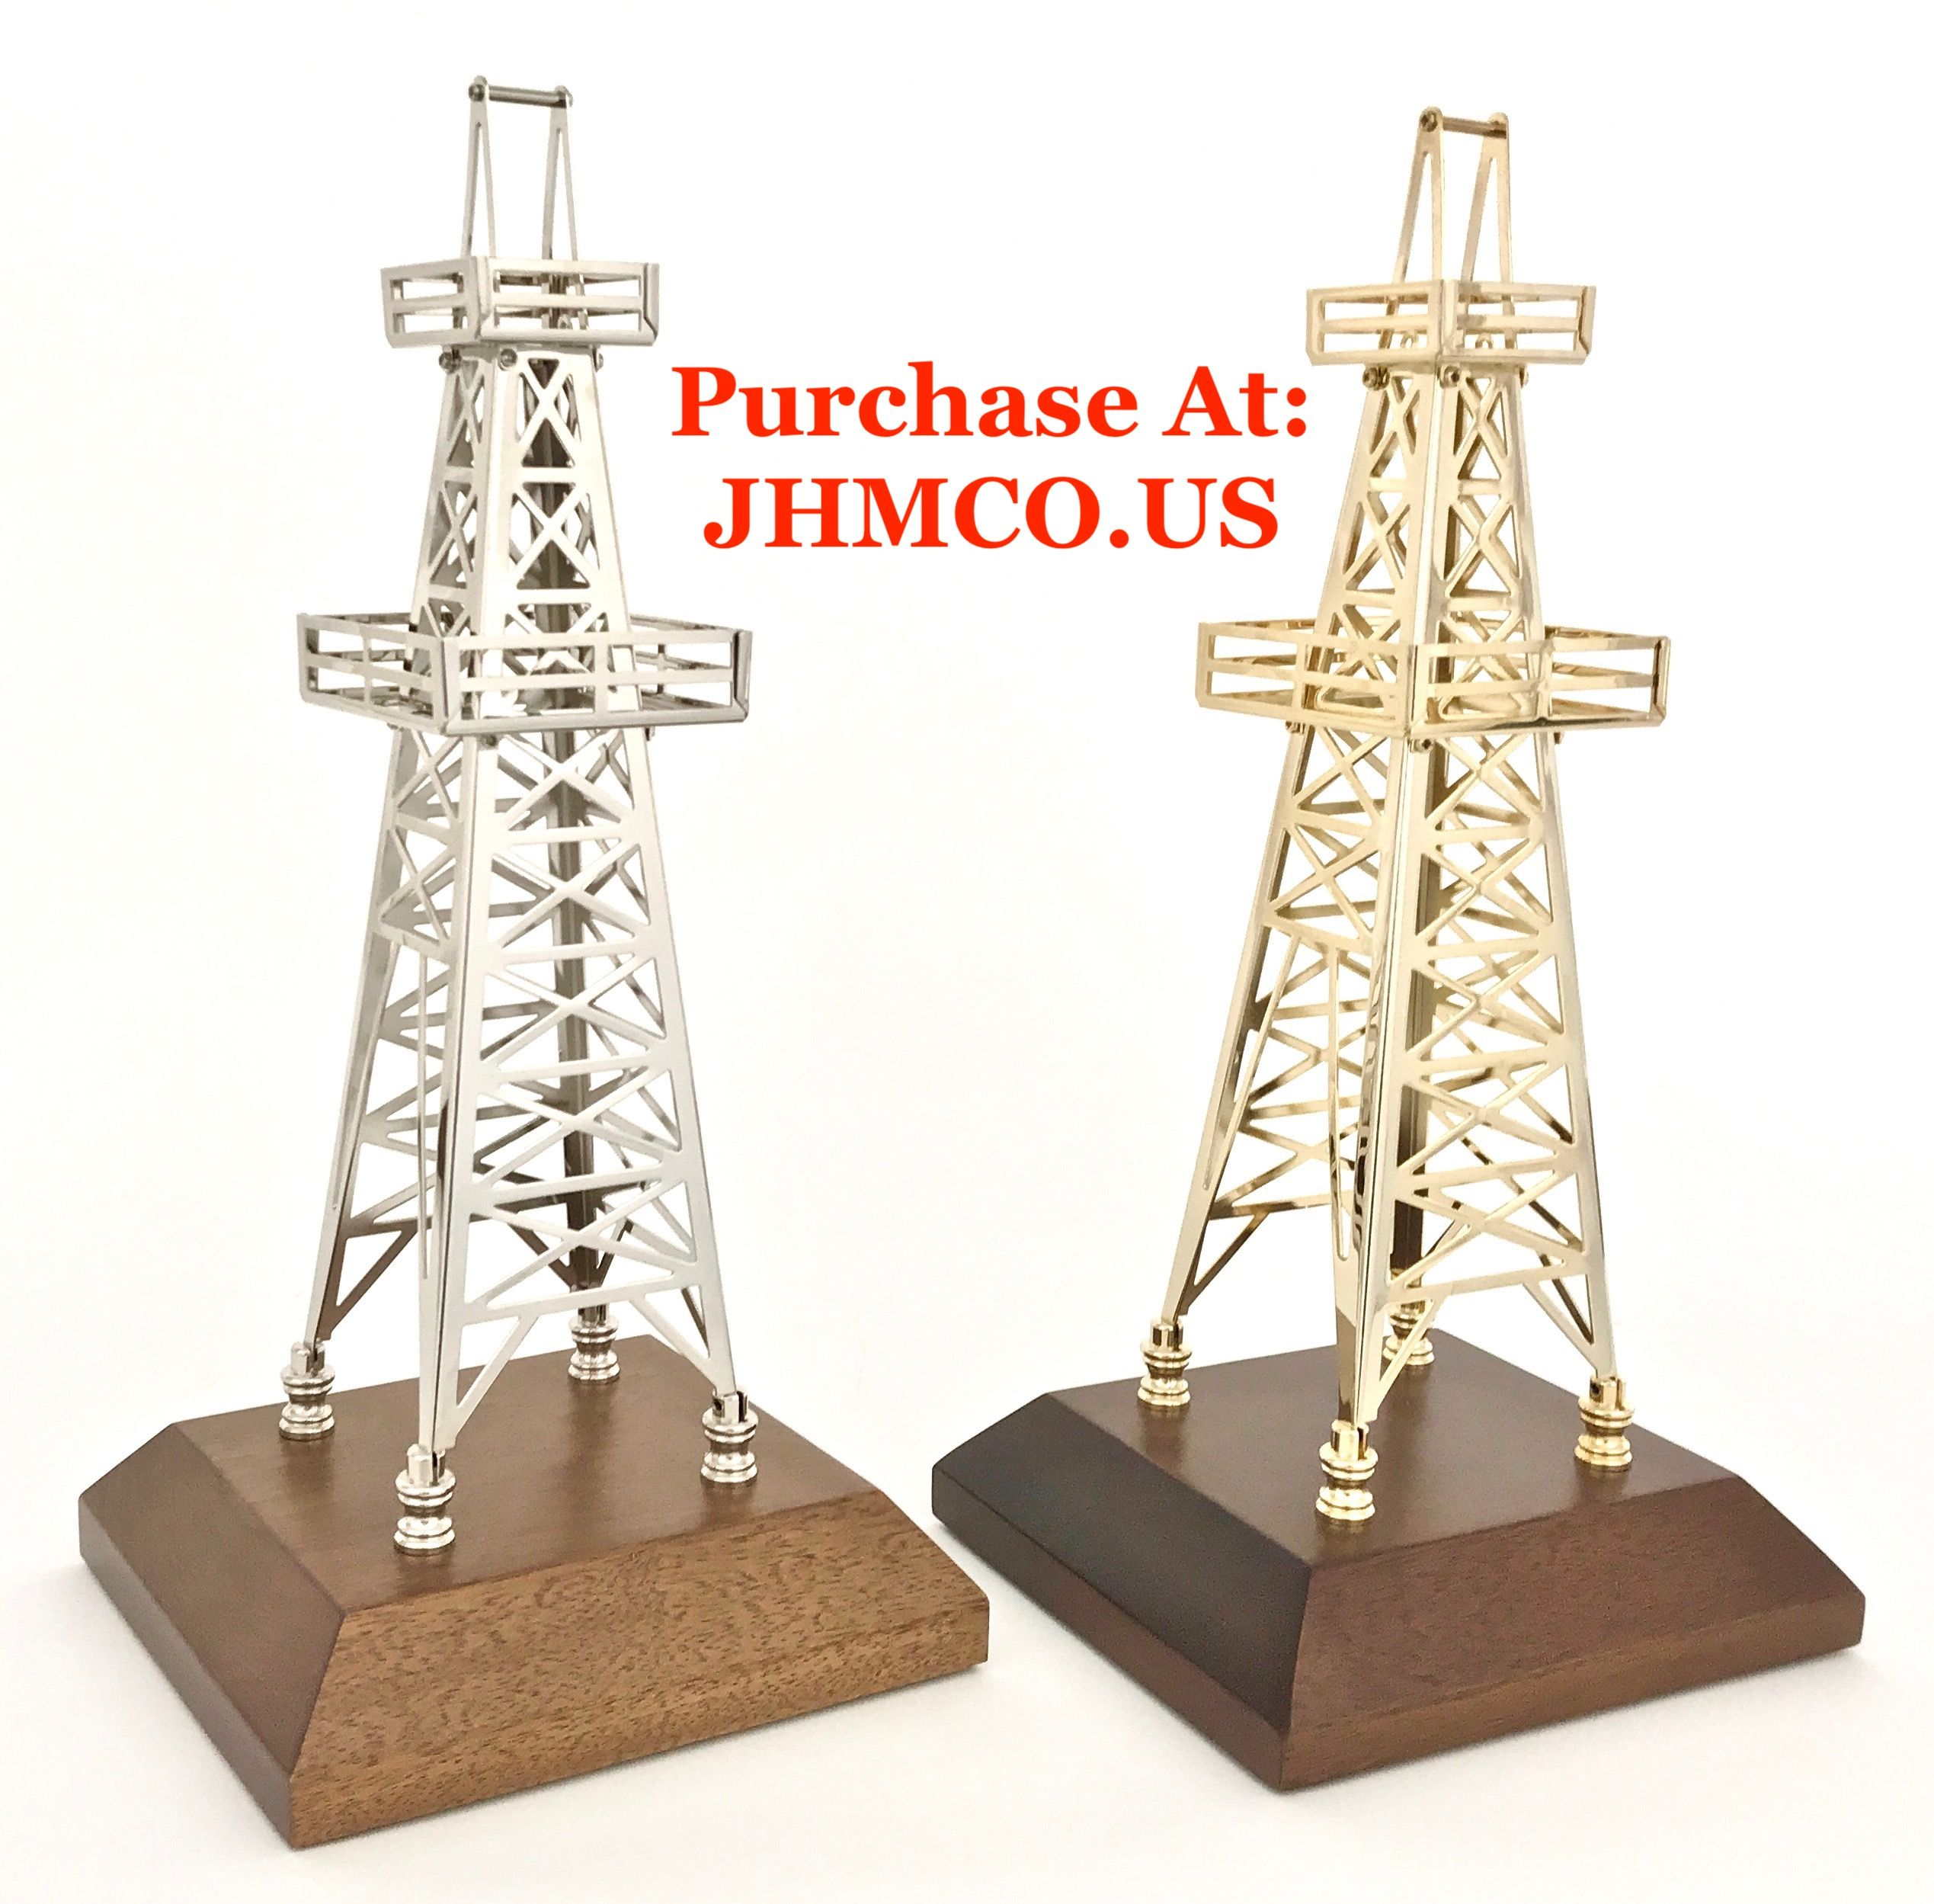 oilfield oil rig model derricks make wonderful oil and gas safety awards or the perfect christmas gift for an oilfield worker